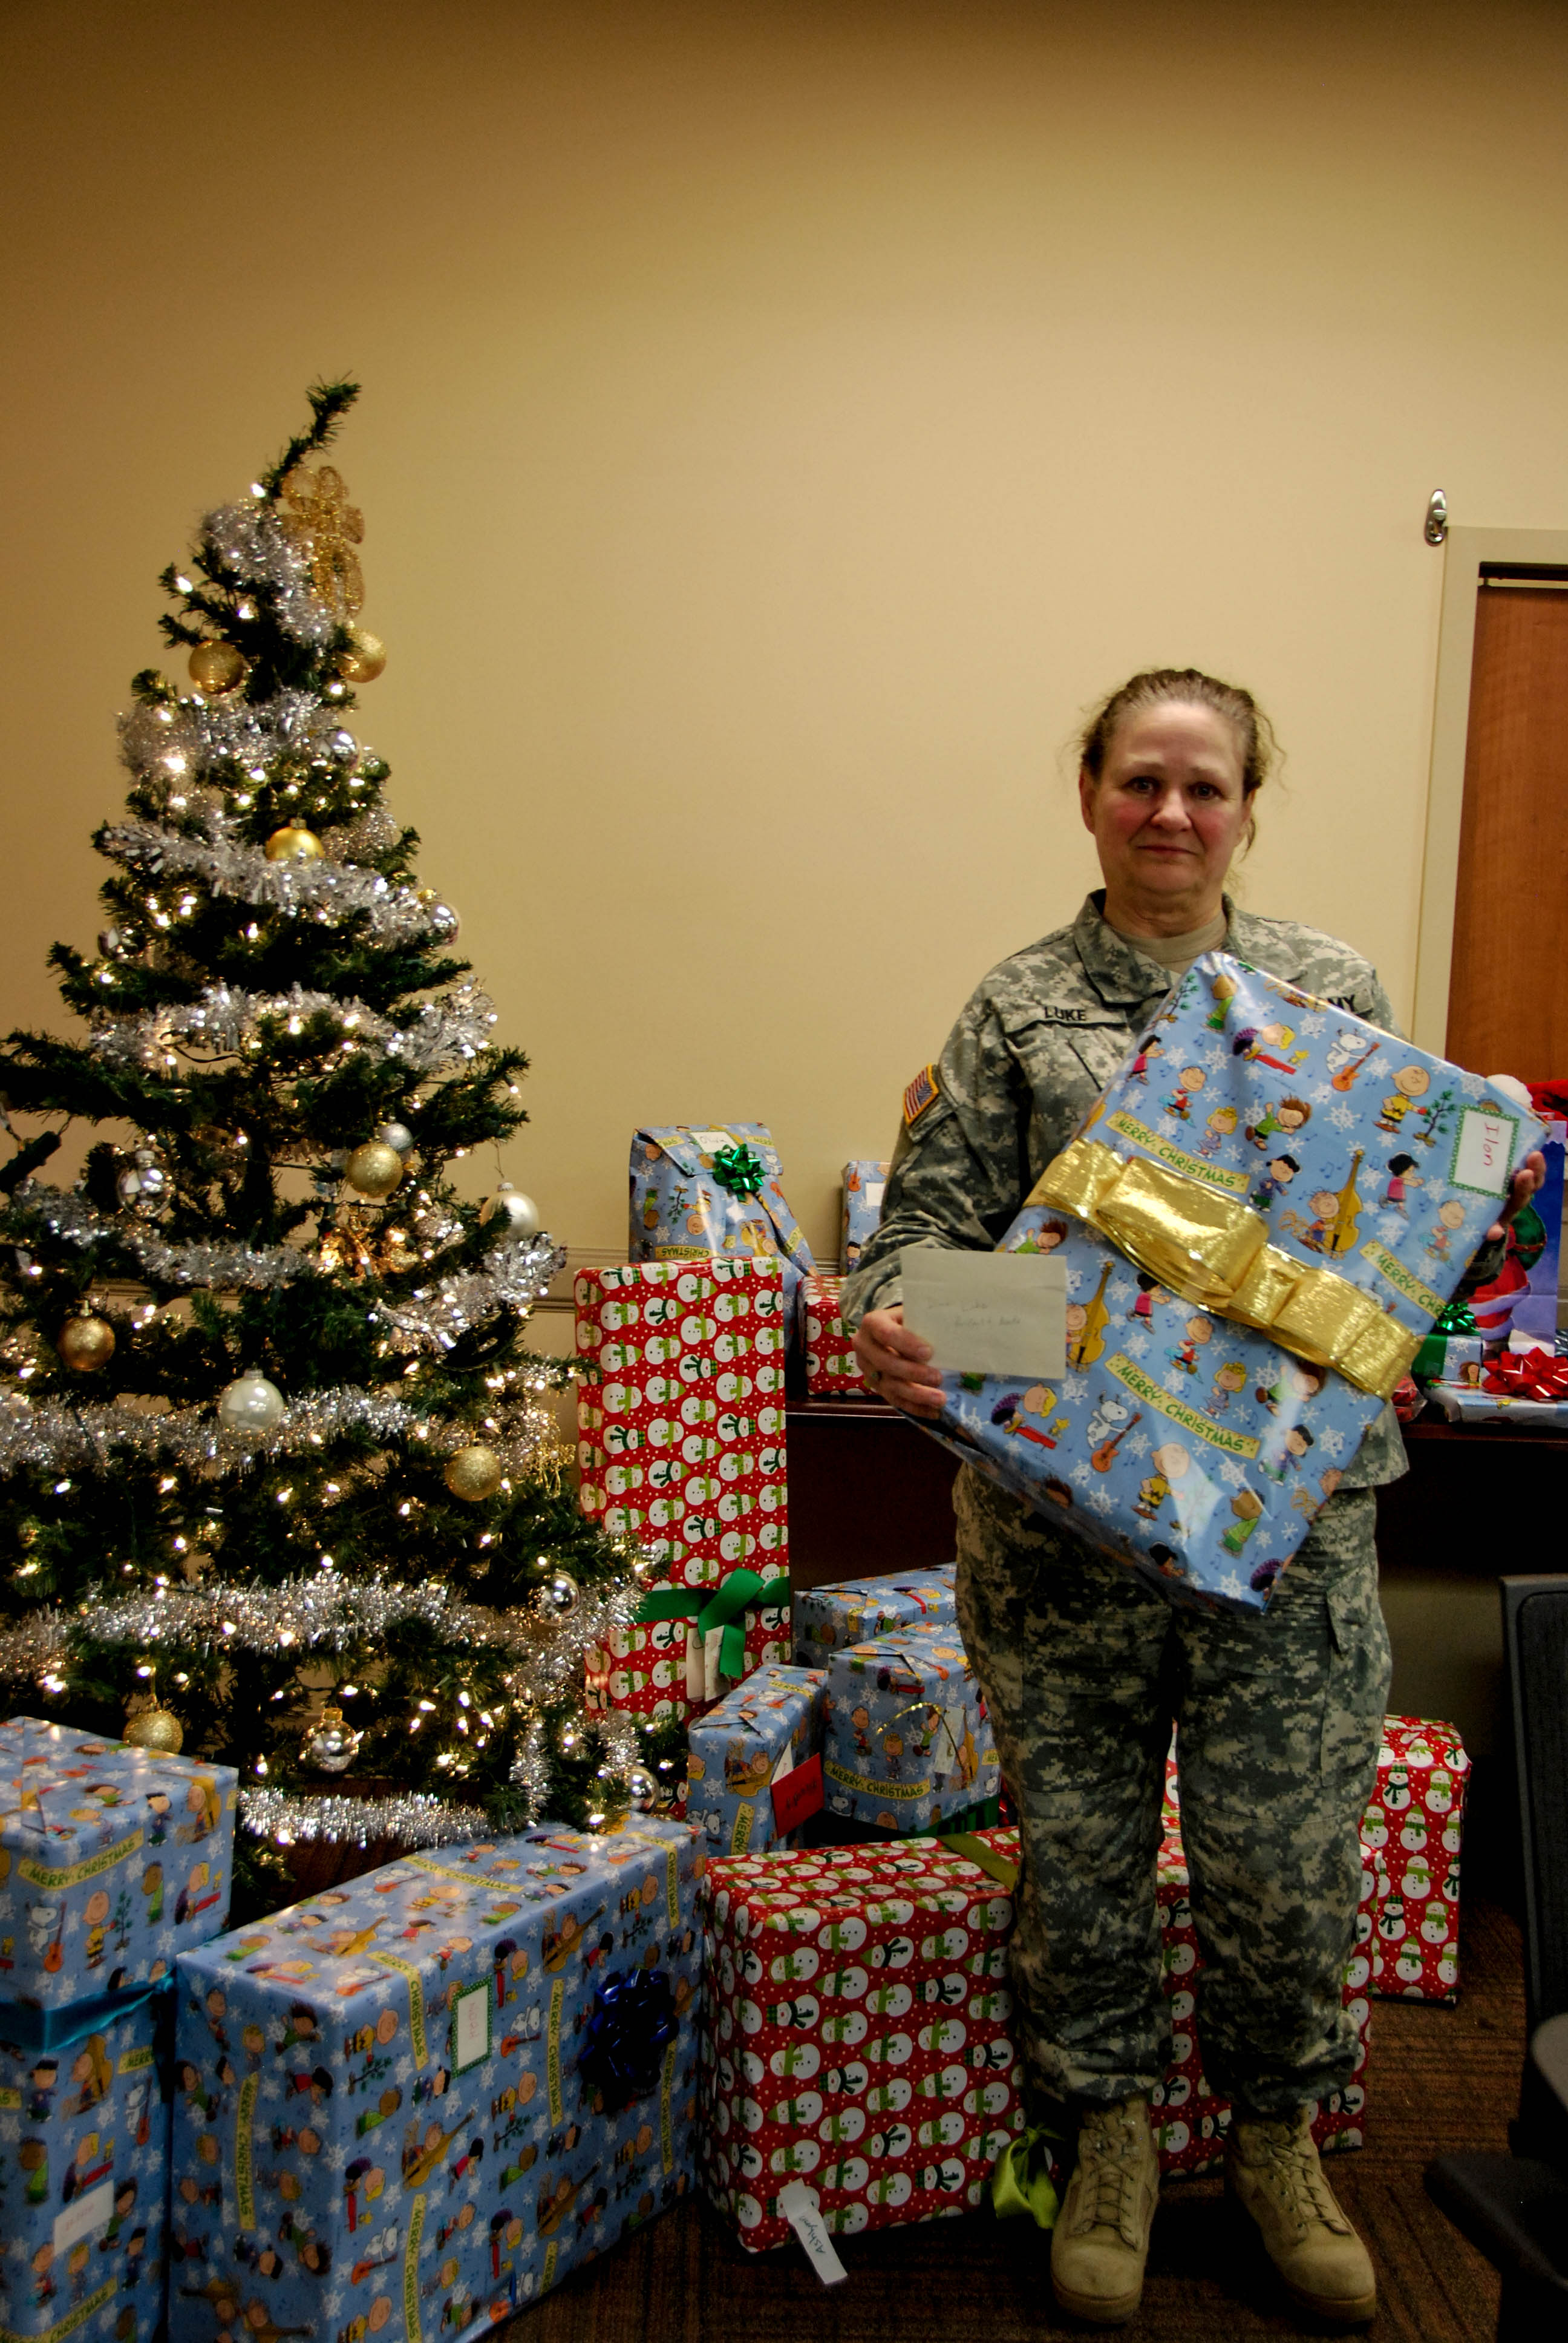 A soldier with Christmas presents for our Troops and their Families